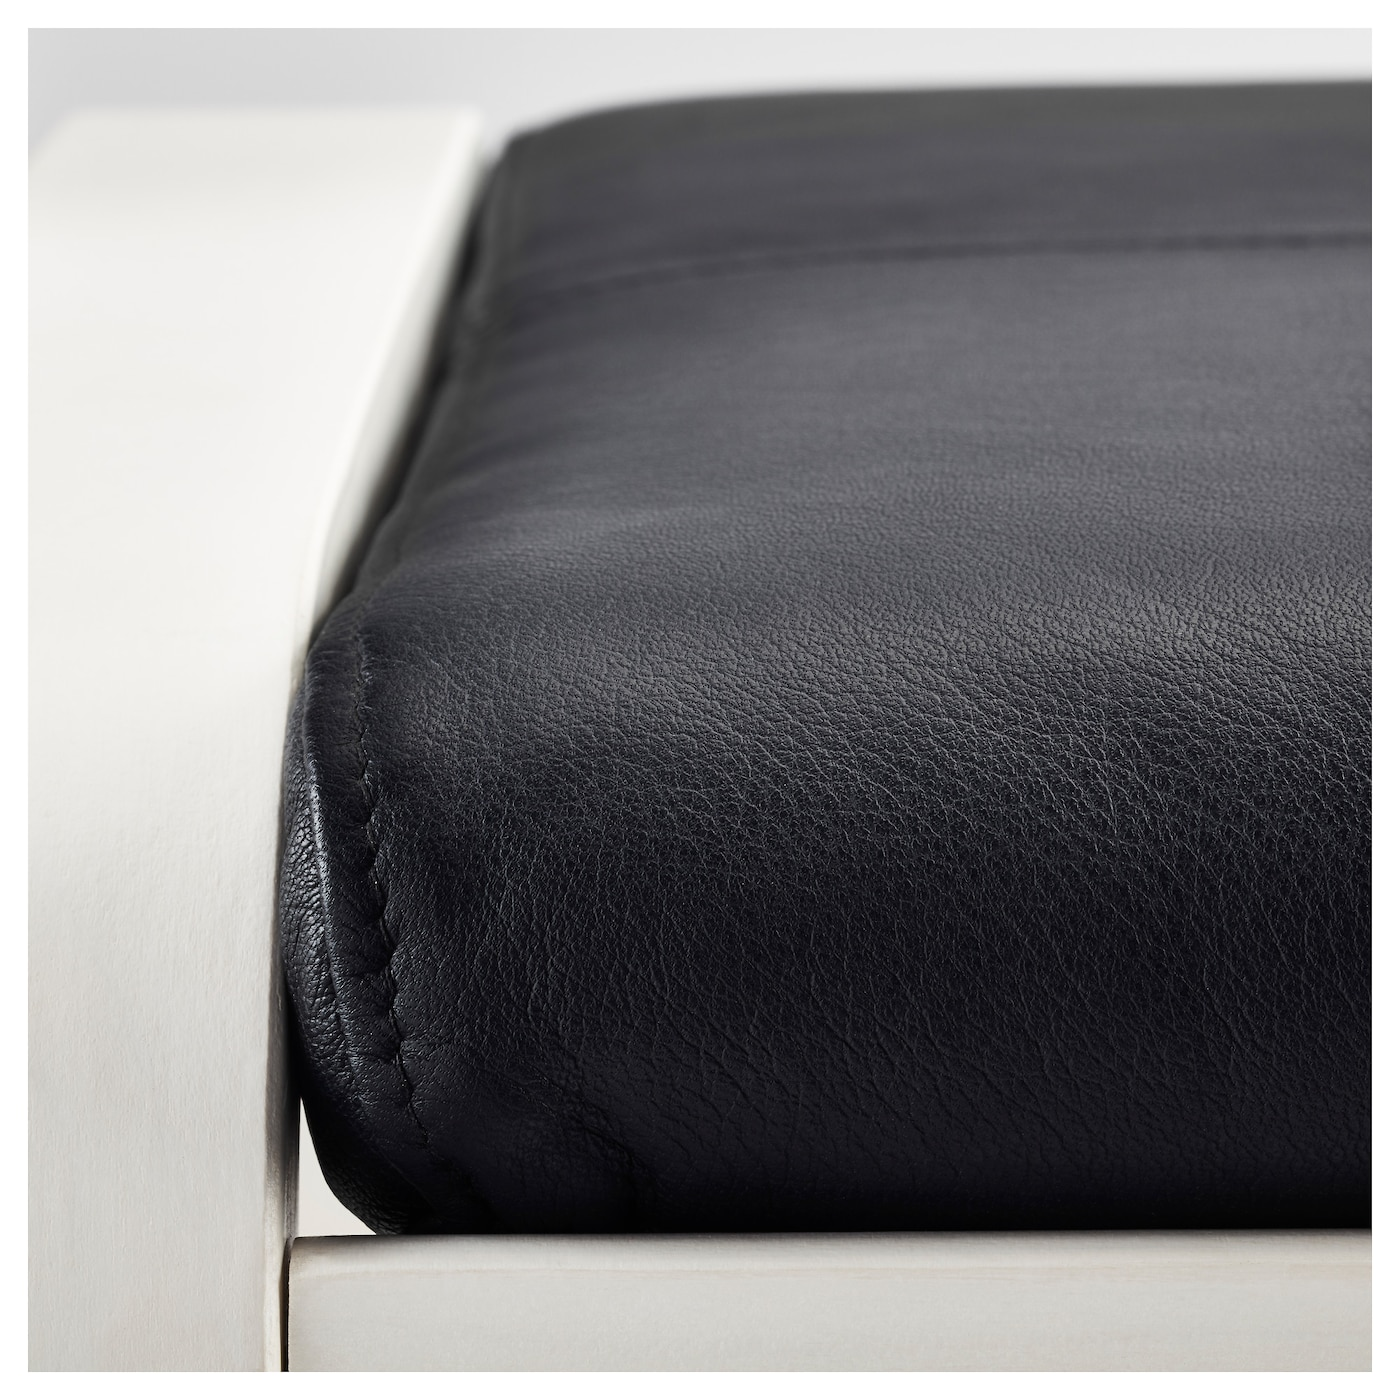 IKEA POÄNG footstool Soft, hardwearing and easy care leather, which ages gracefully.